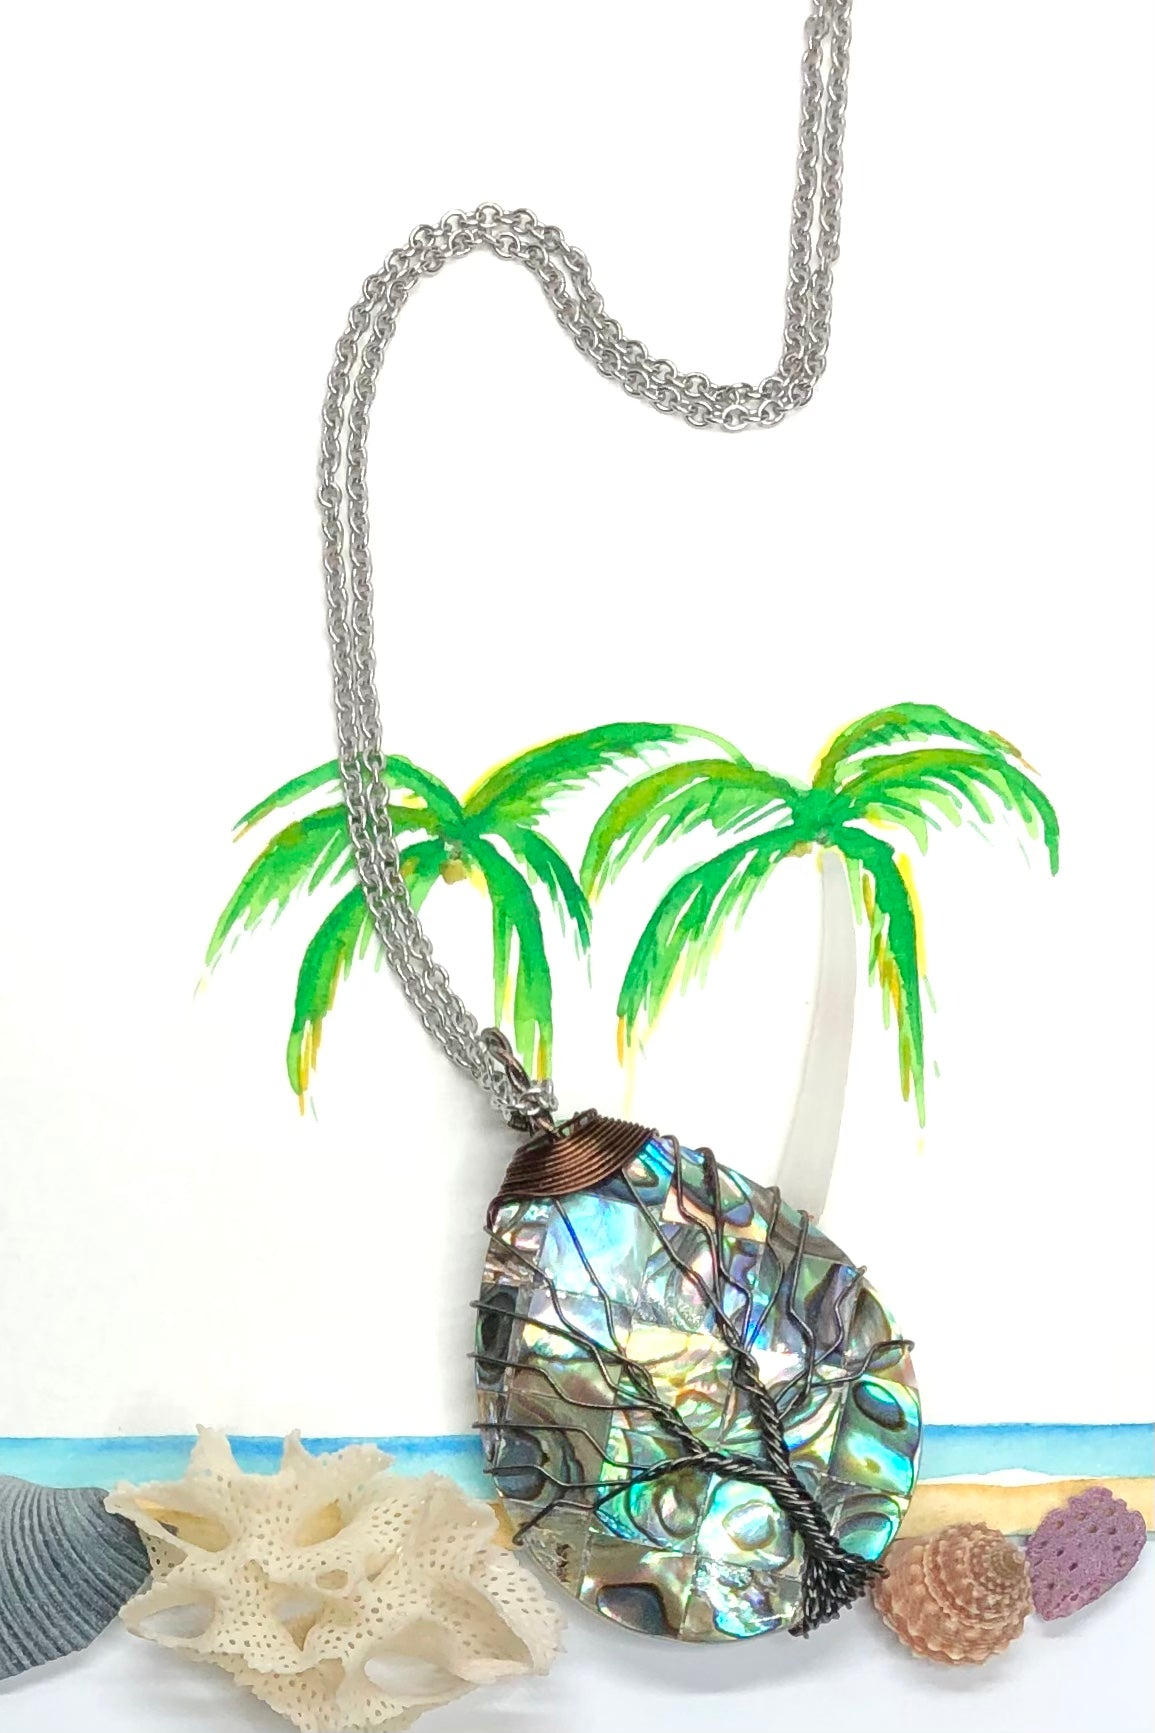 This pure and lovey Paua or Abalone shell pendant is polished to a high shine, it has a gorgeous Tree of life detail wire wrapped over the surface.